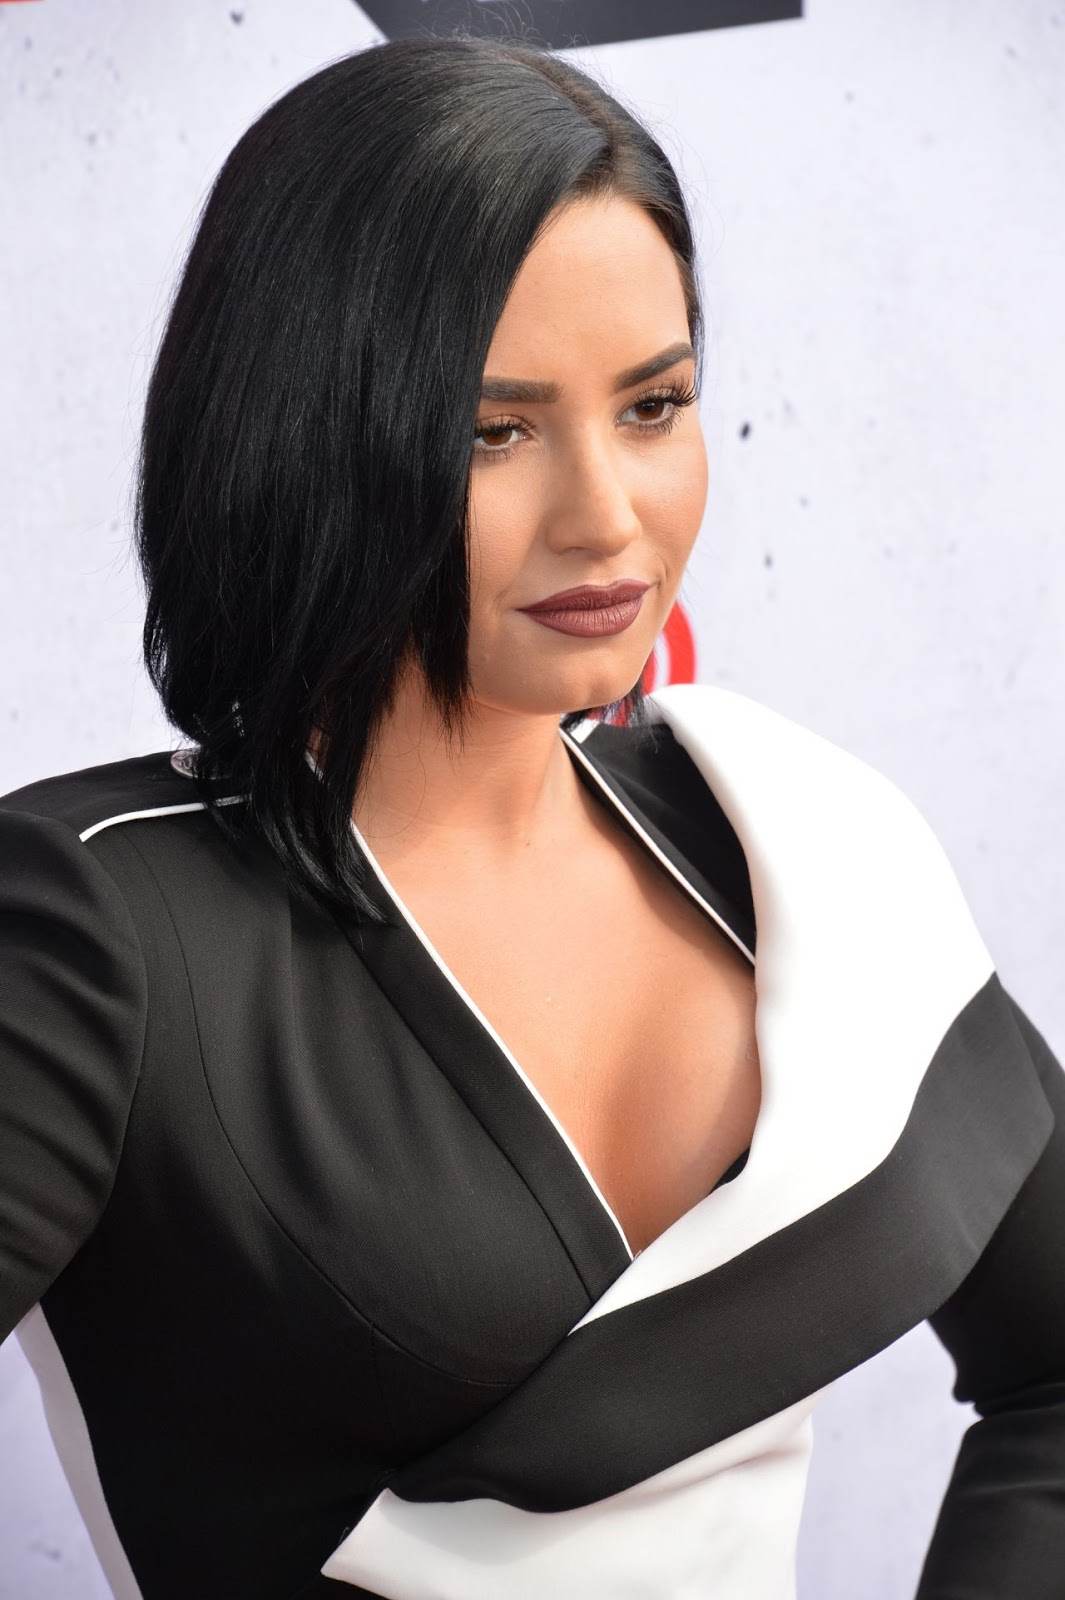 Demi Lovato bares cleavage at the iHeartRadio Music Awards in LA